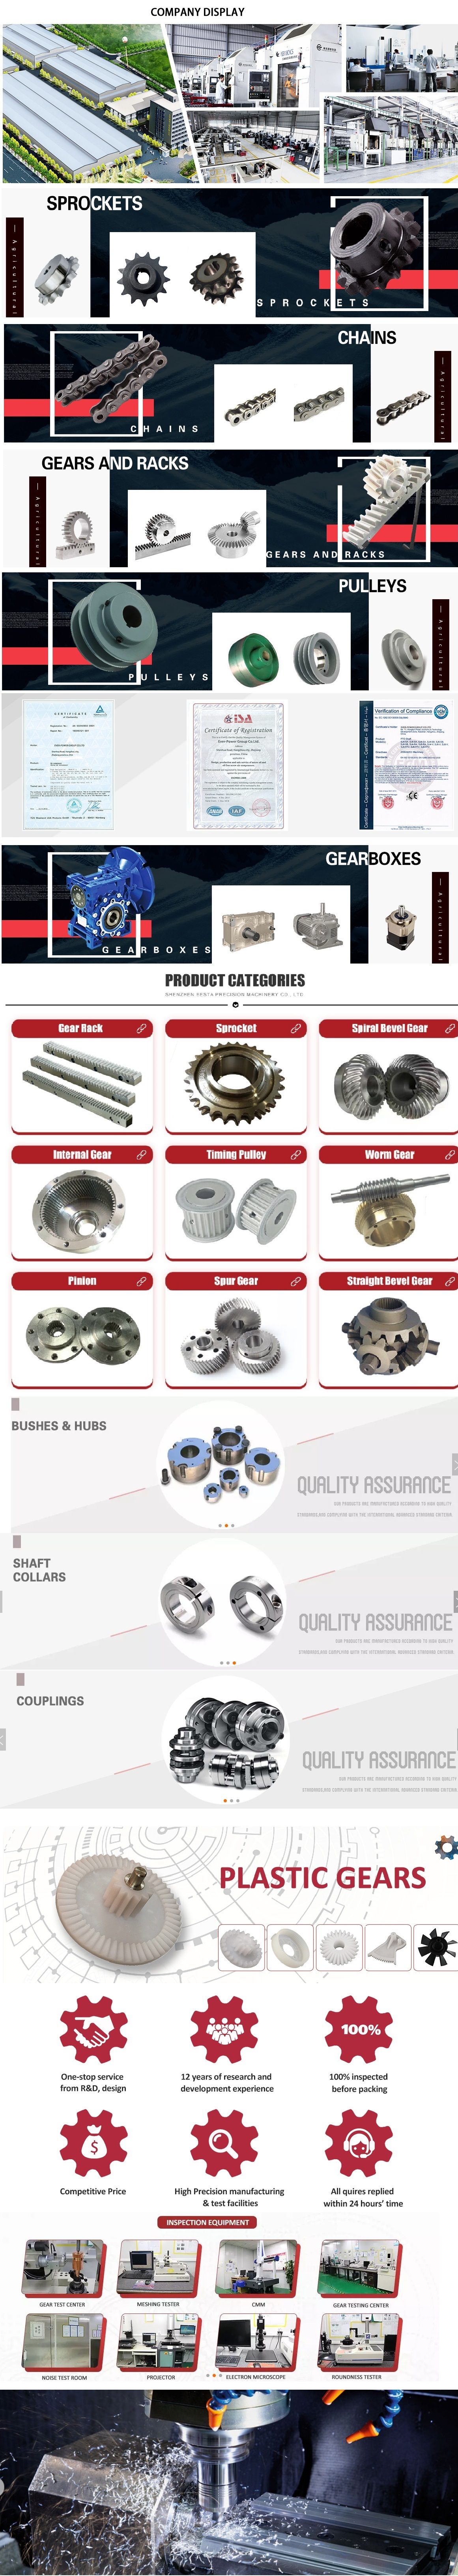 in Gaya India  sales   price   shop   near me   near me shop   factory   supplier T Series Spiral Bevel Gearbox Reducer 90 Degree Gear Transmission Small Right Angle Spiral Bevel Gear Steering Gearbox manufacturer   best   Cost   Custom   Cheap   wholesaler